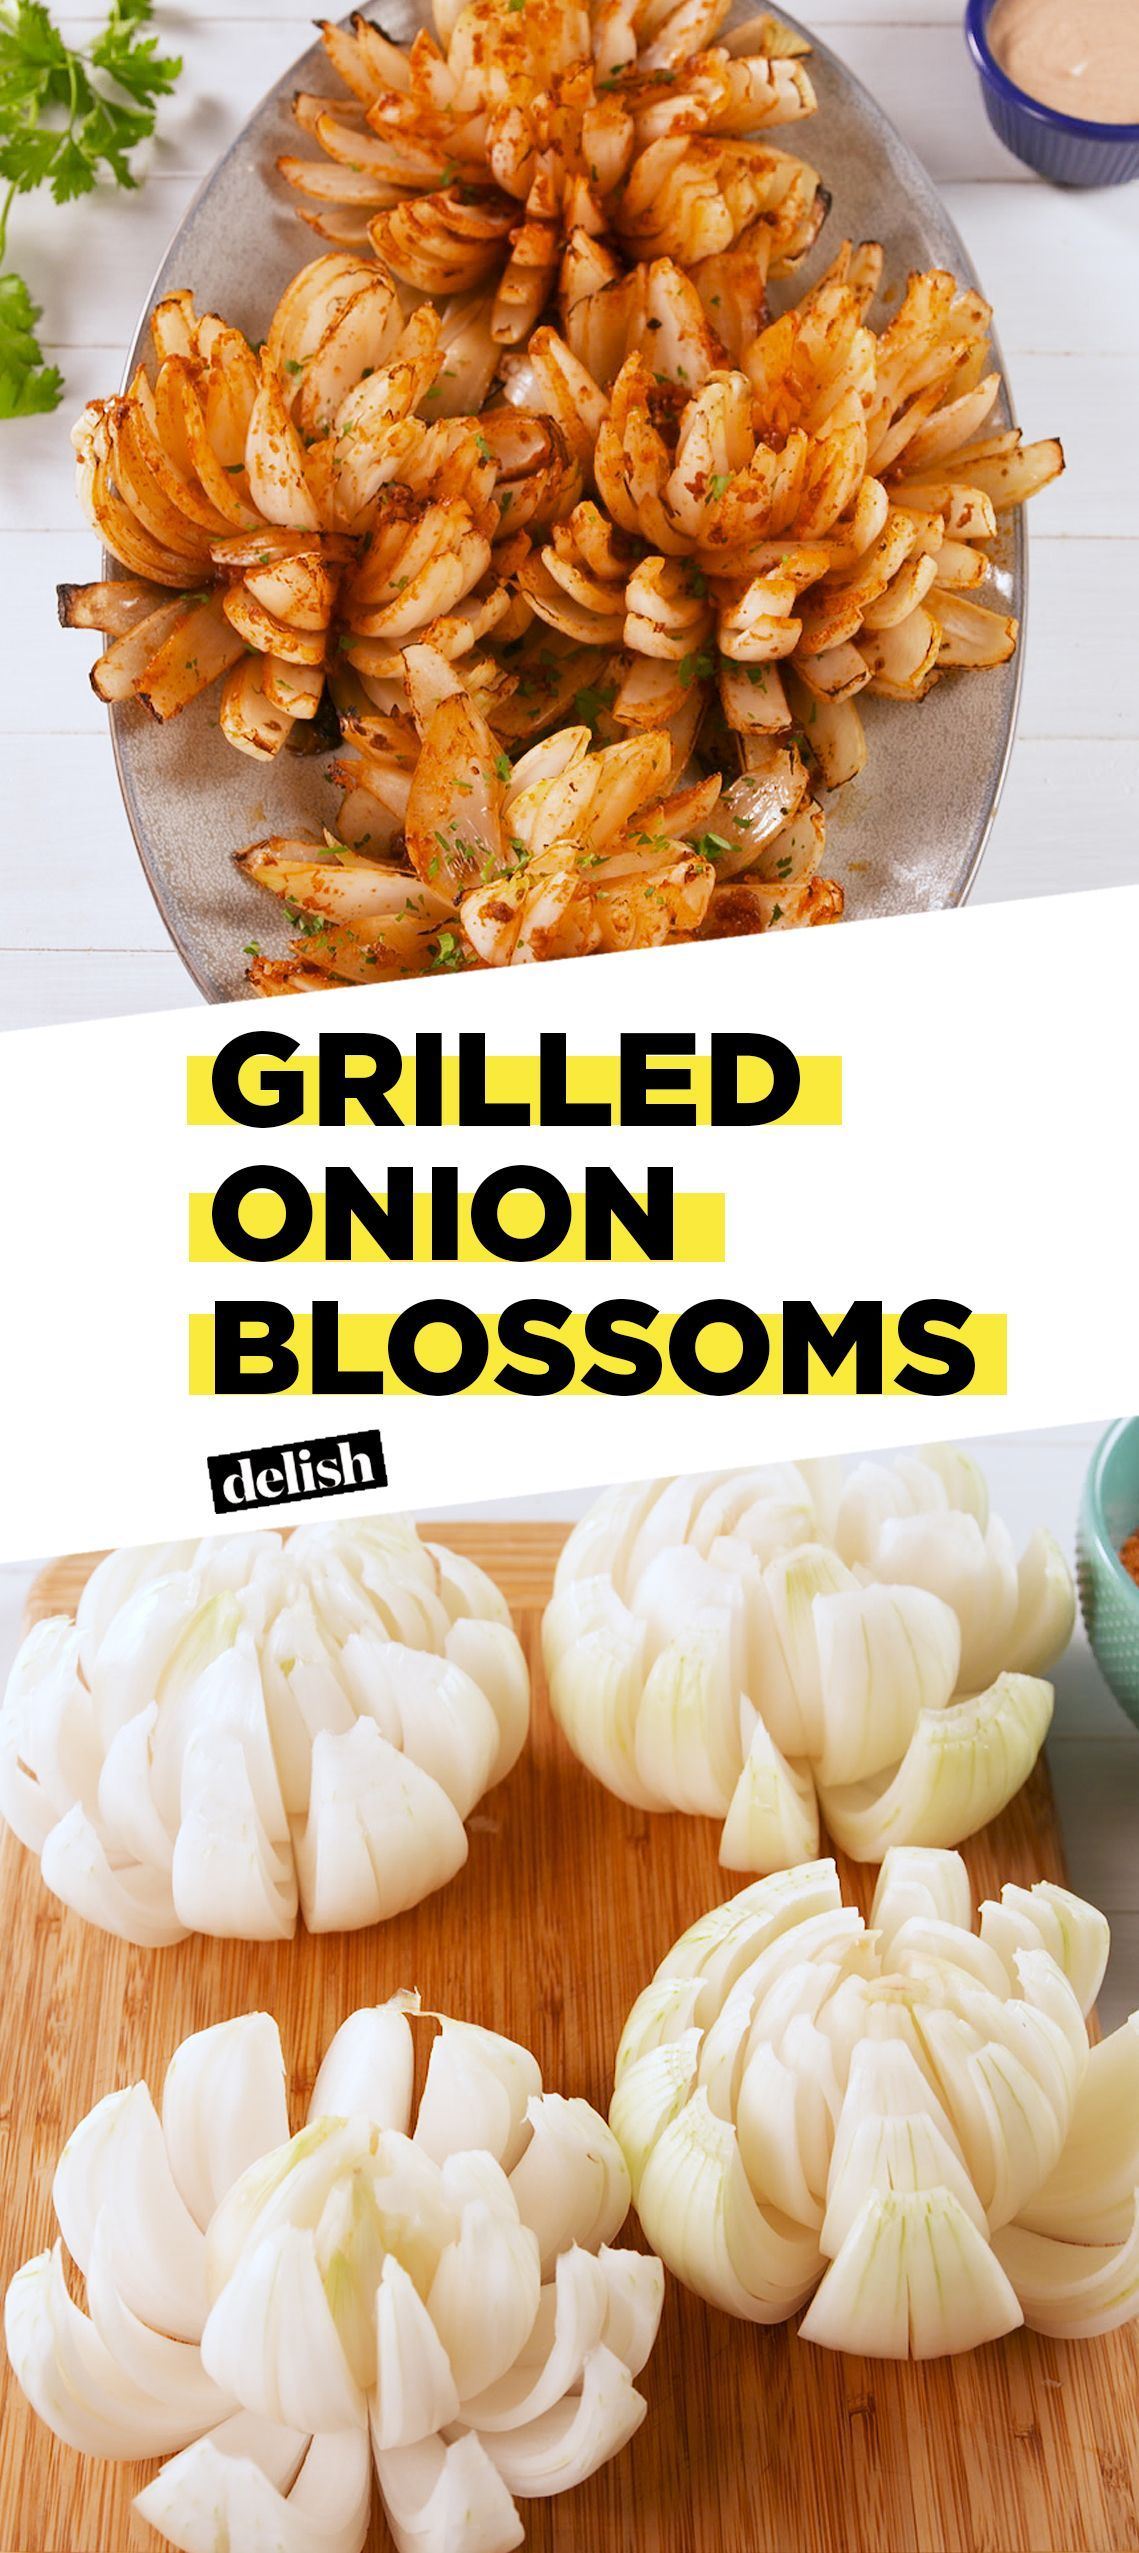 Grilled Onion Blossoms Grilled Onion Blossoms are the low-carb version of bloomin' onions. Get the recipe at .